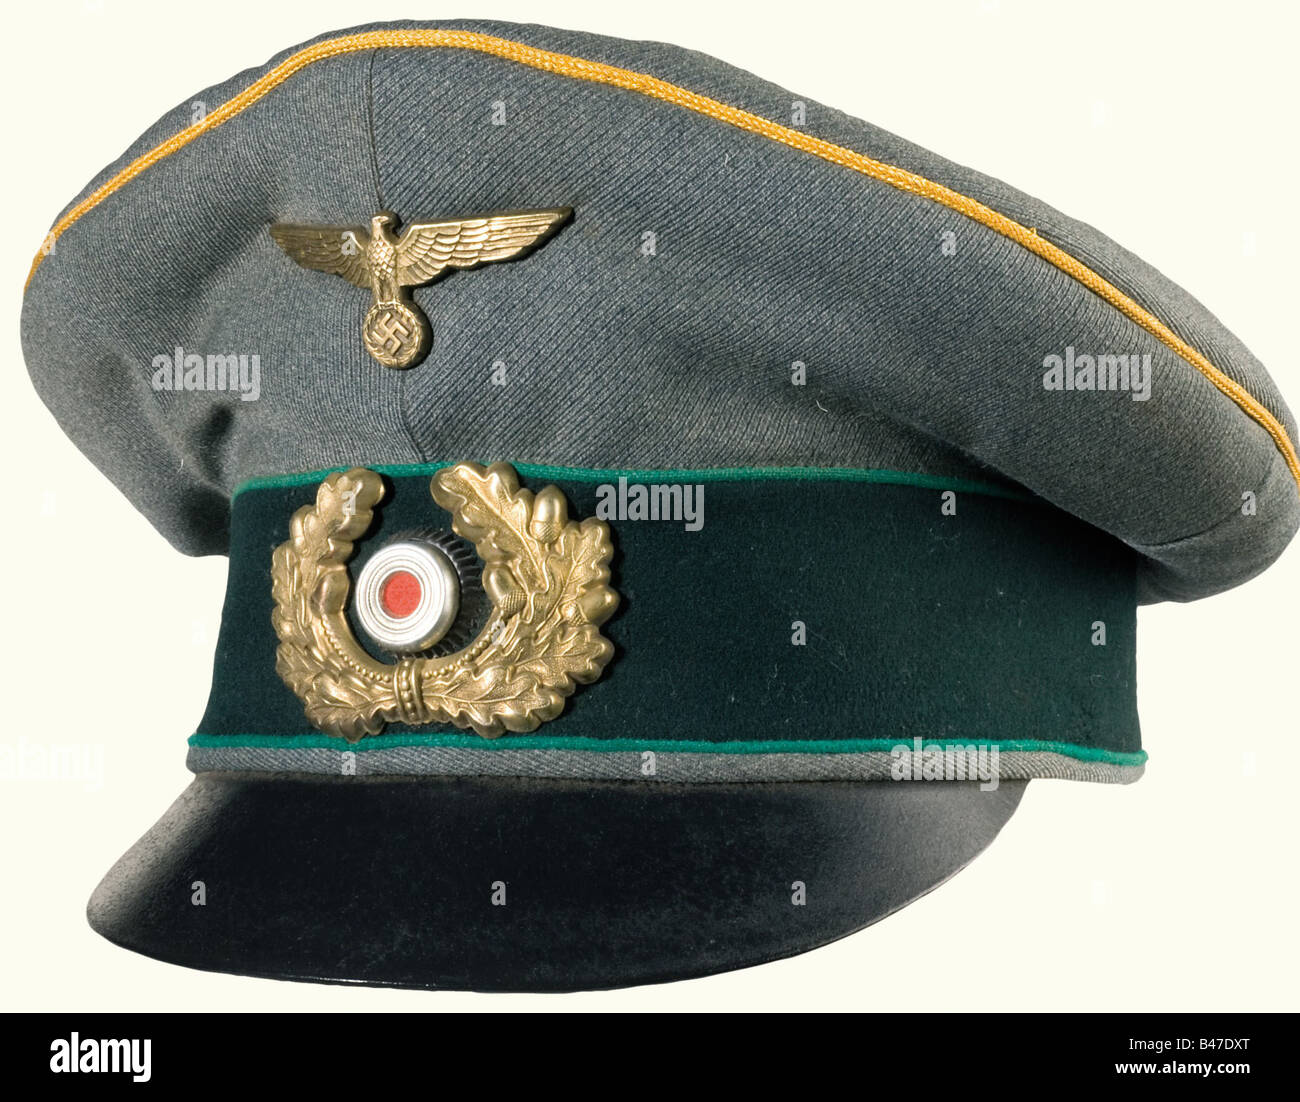 An old style field cap, for officials of general rank. Fine field grey cloth with dark green cap band, green piping - Stock Image